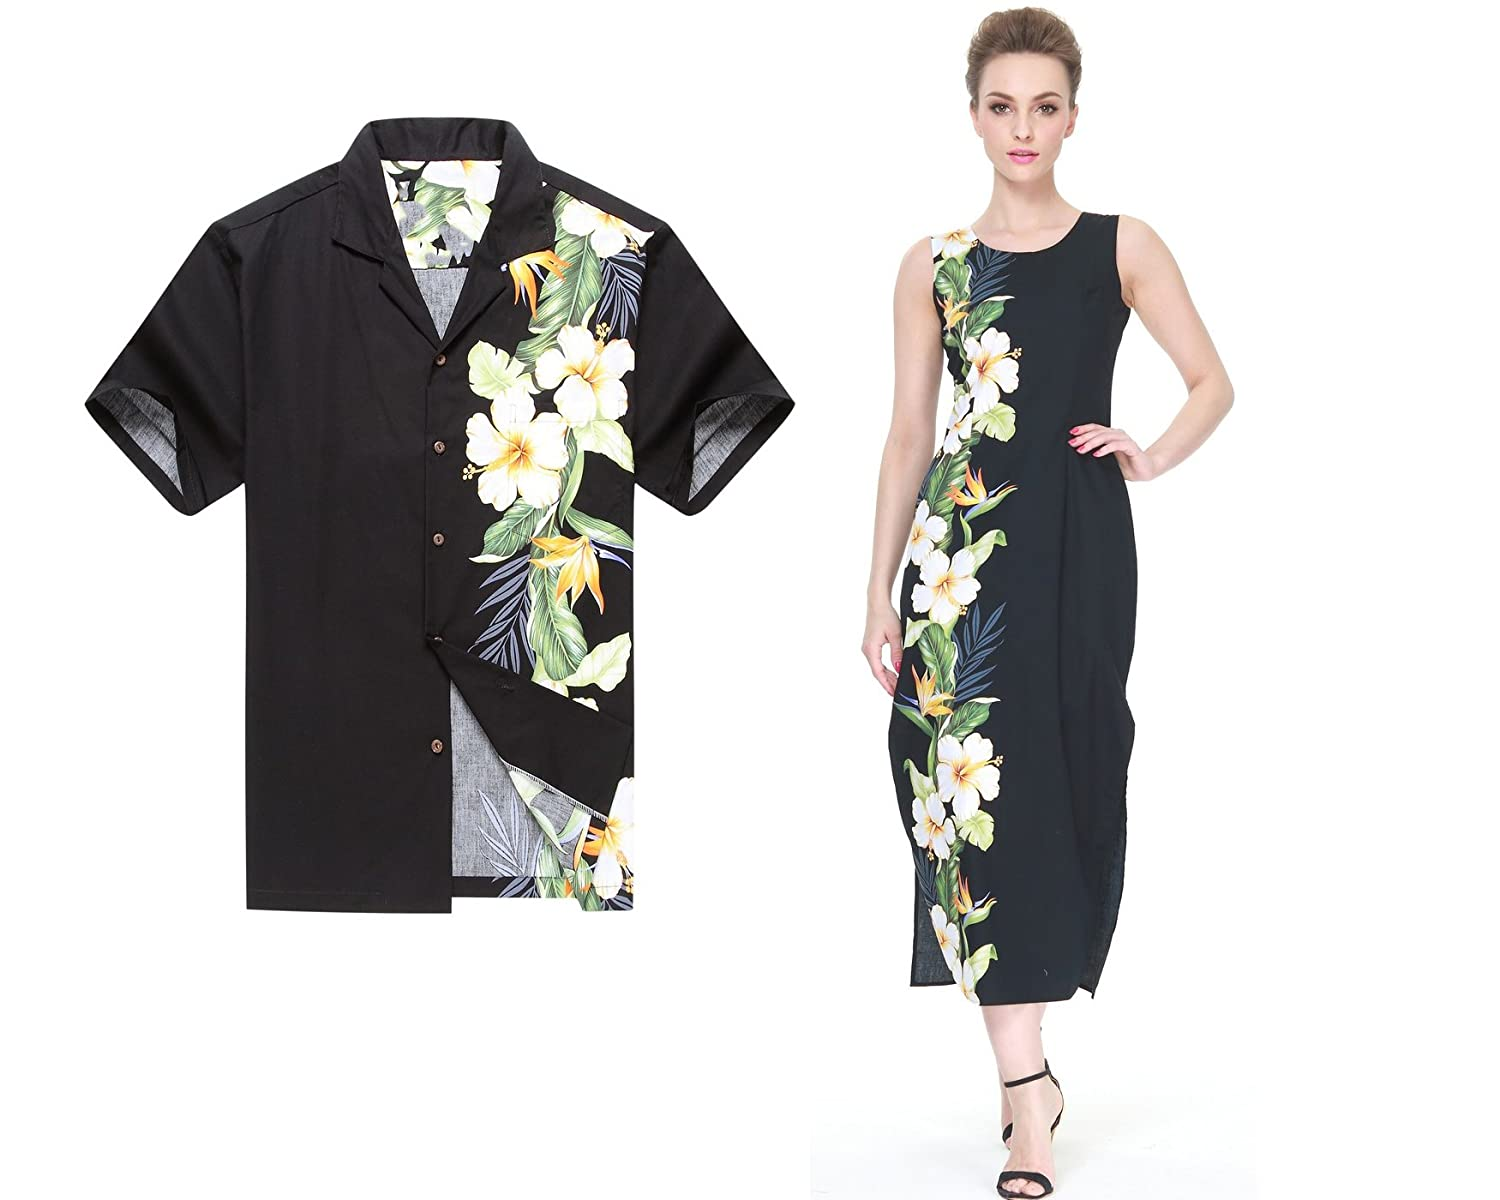 47b6ef8b Made in Hawaii, Exact Matching Outfit Price includes one men shirt and one women  Dress Made of 100% Cotton, pre-shrunk